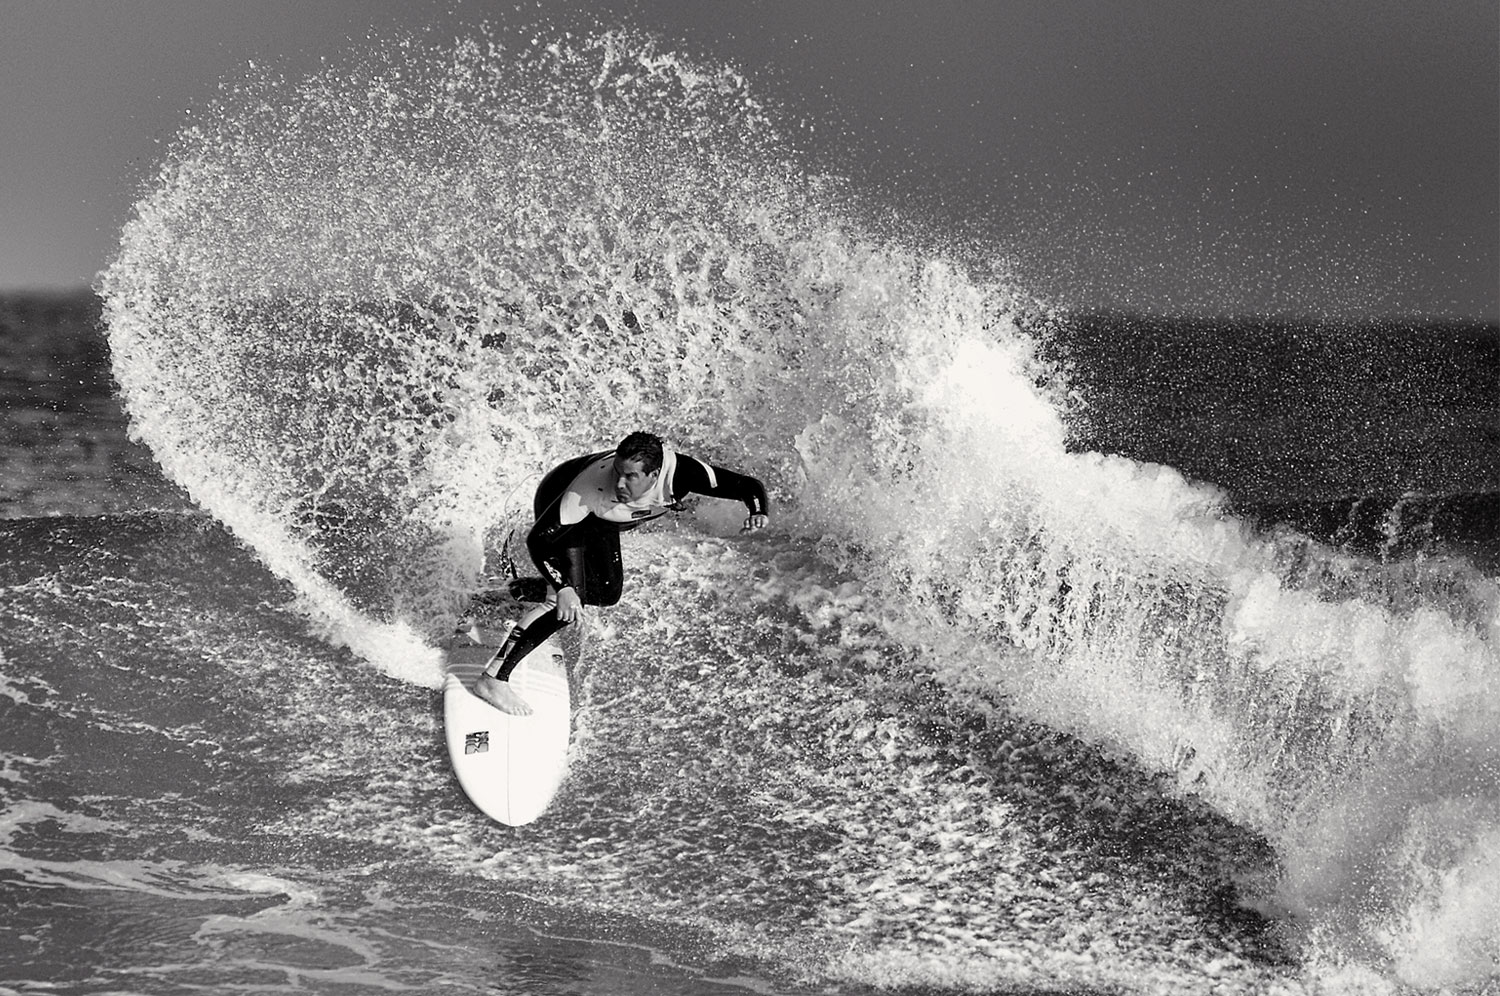 Andy surfing East Strand. Pic by     Eddie McIlwaine